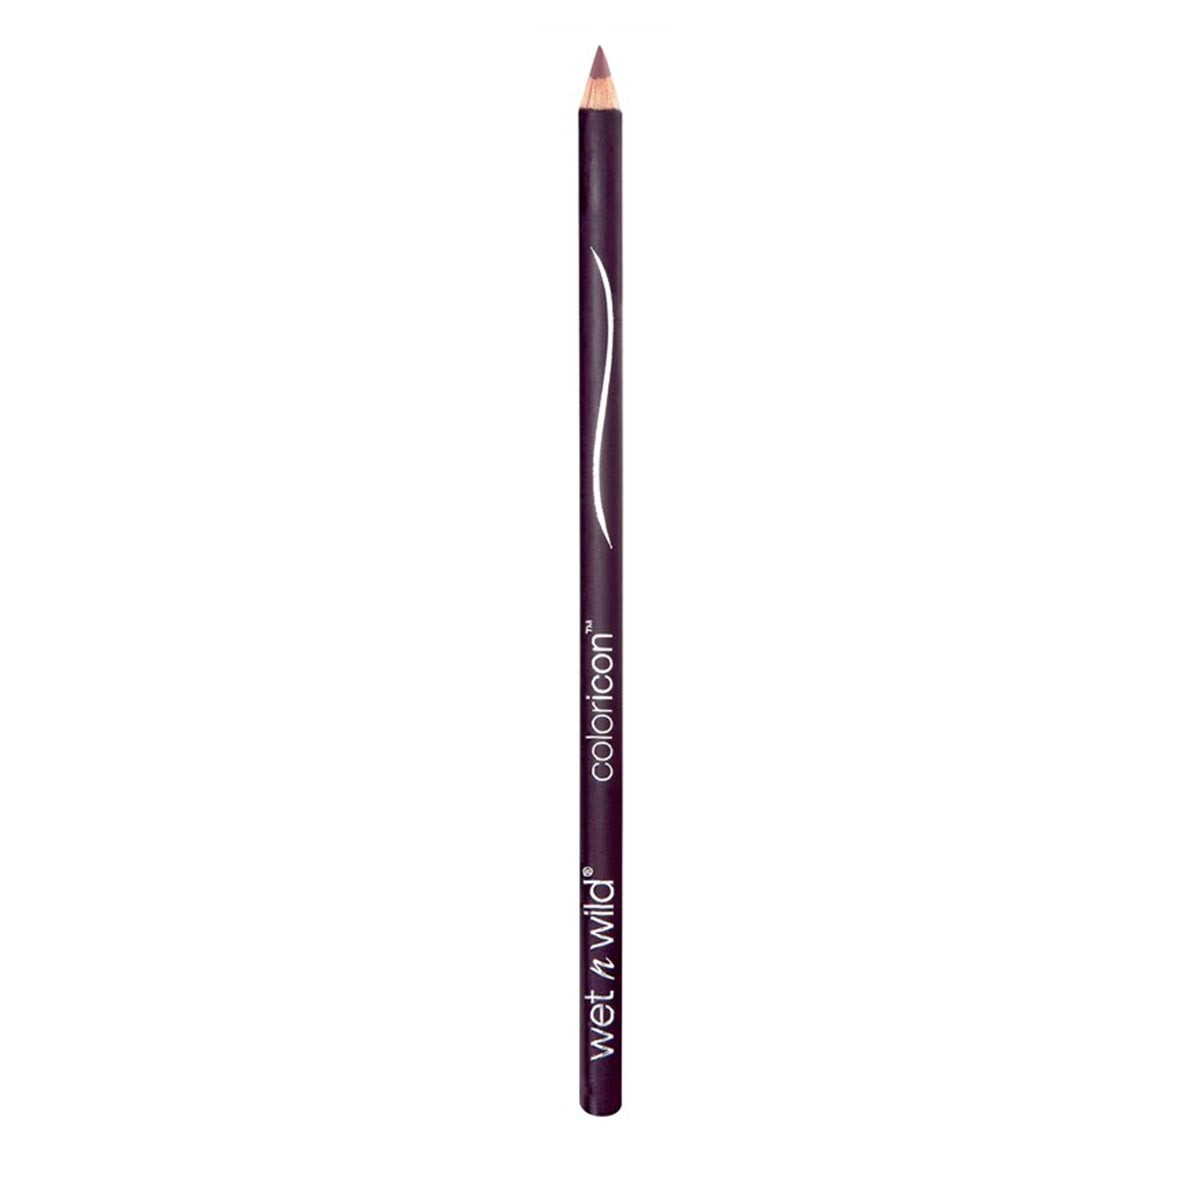 Wet n wild fragrances Coloricon Lipliner Plumberry